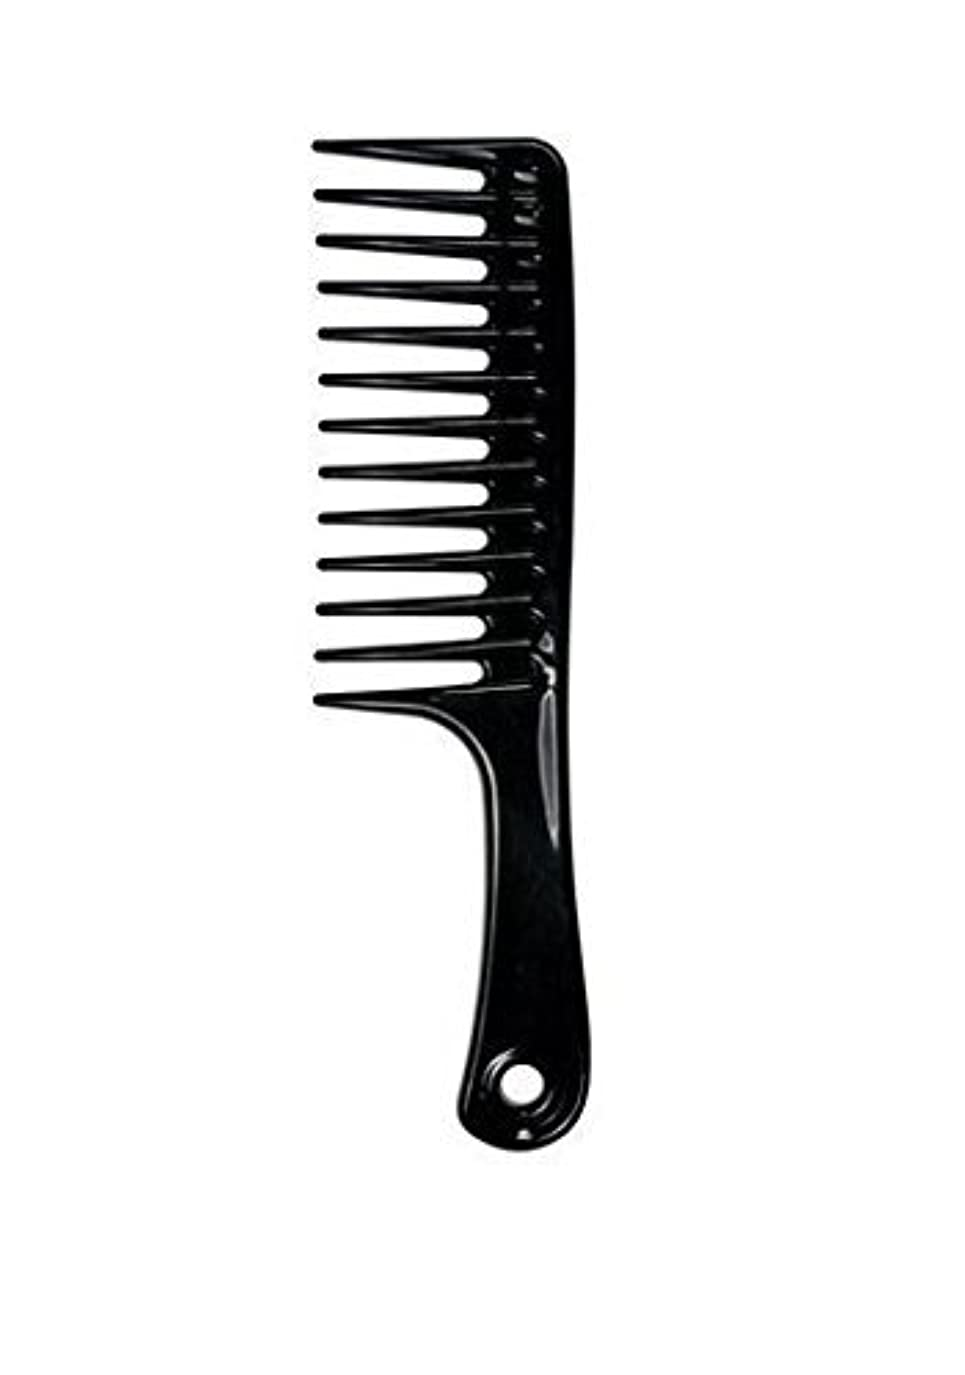 基礎耐えられるレイアウトLarge Tooth Detangle Comb Shampoo Wide Teeth Comb Hair Salon Shampoo Comb Unbreakable 9 1/2